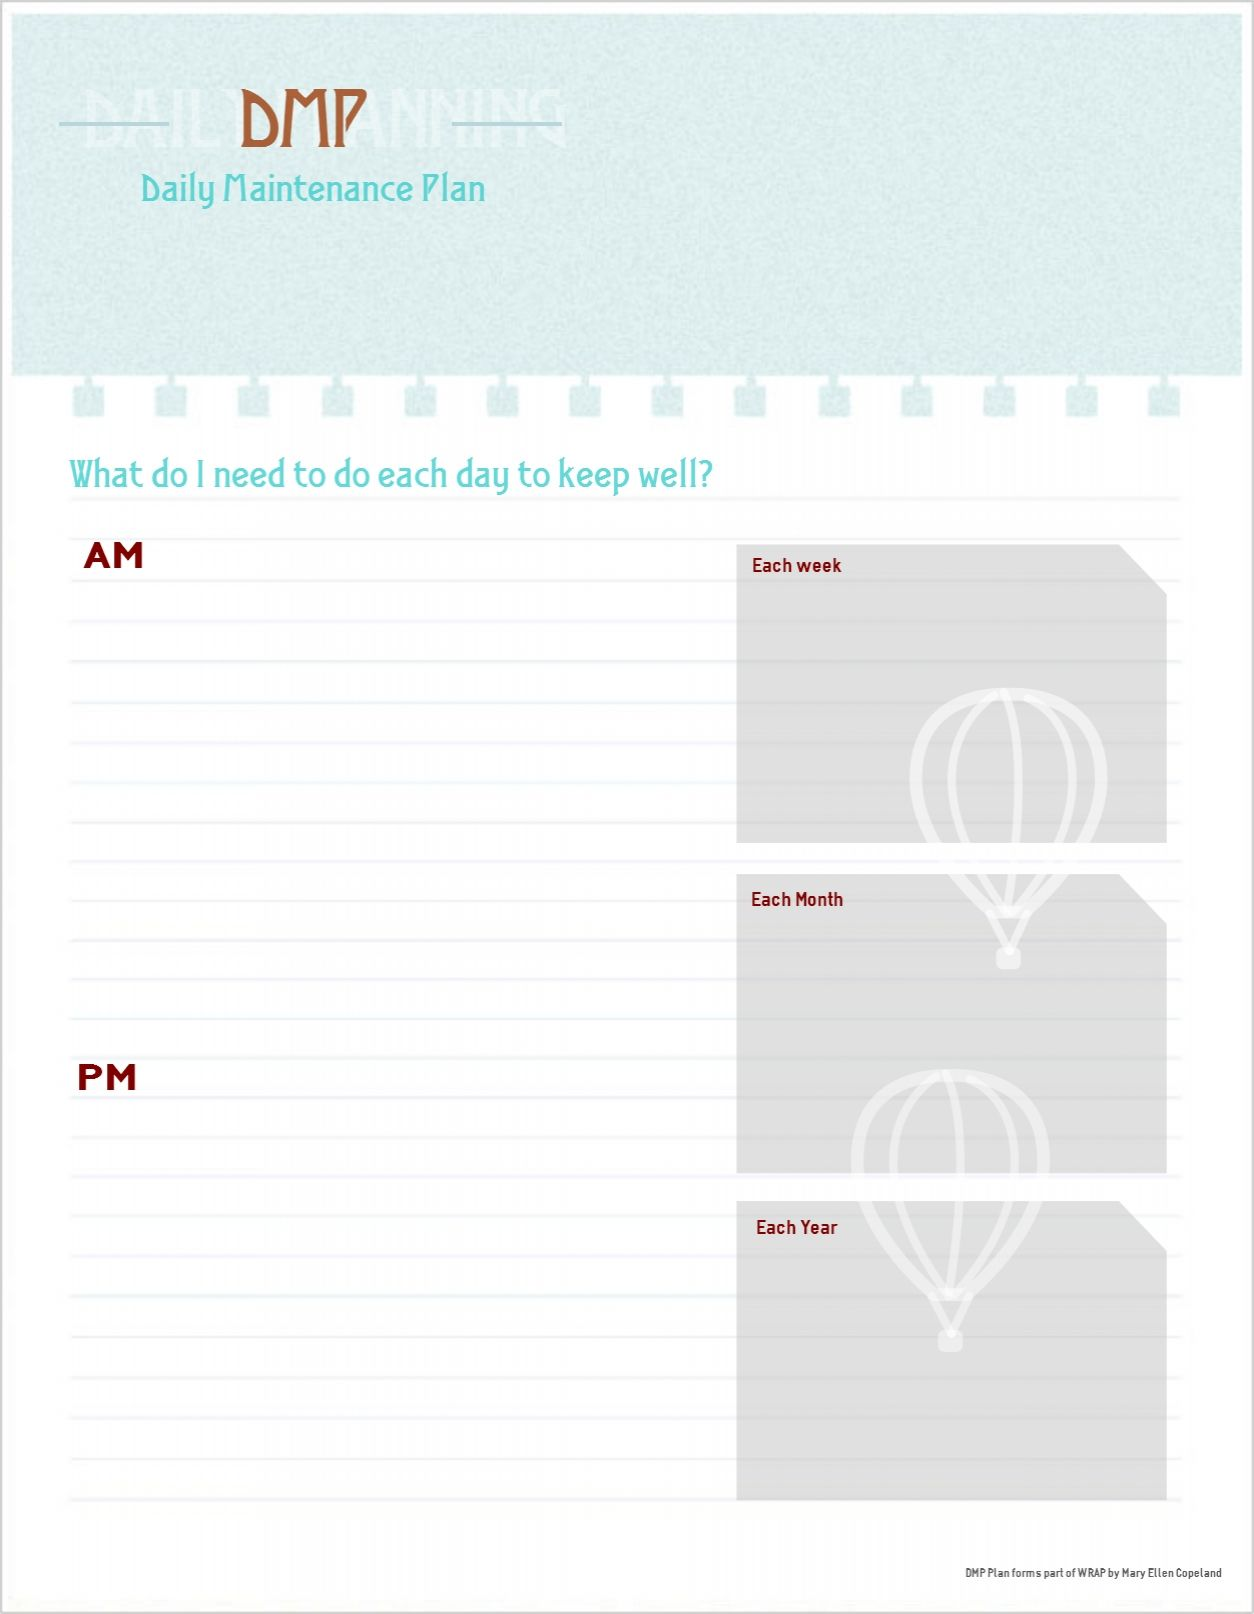 Daily Maintenance Plan Template Free Printable  Good Idea